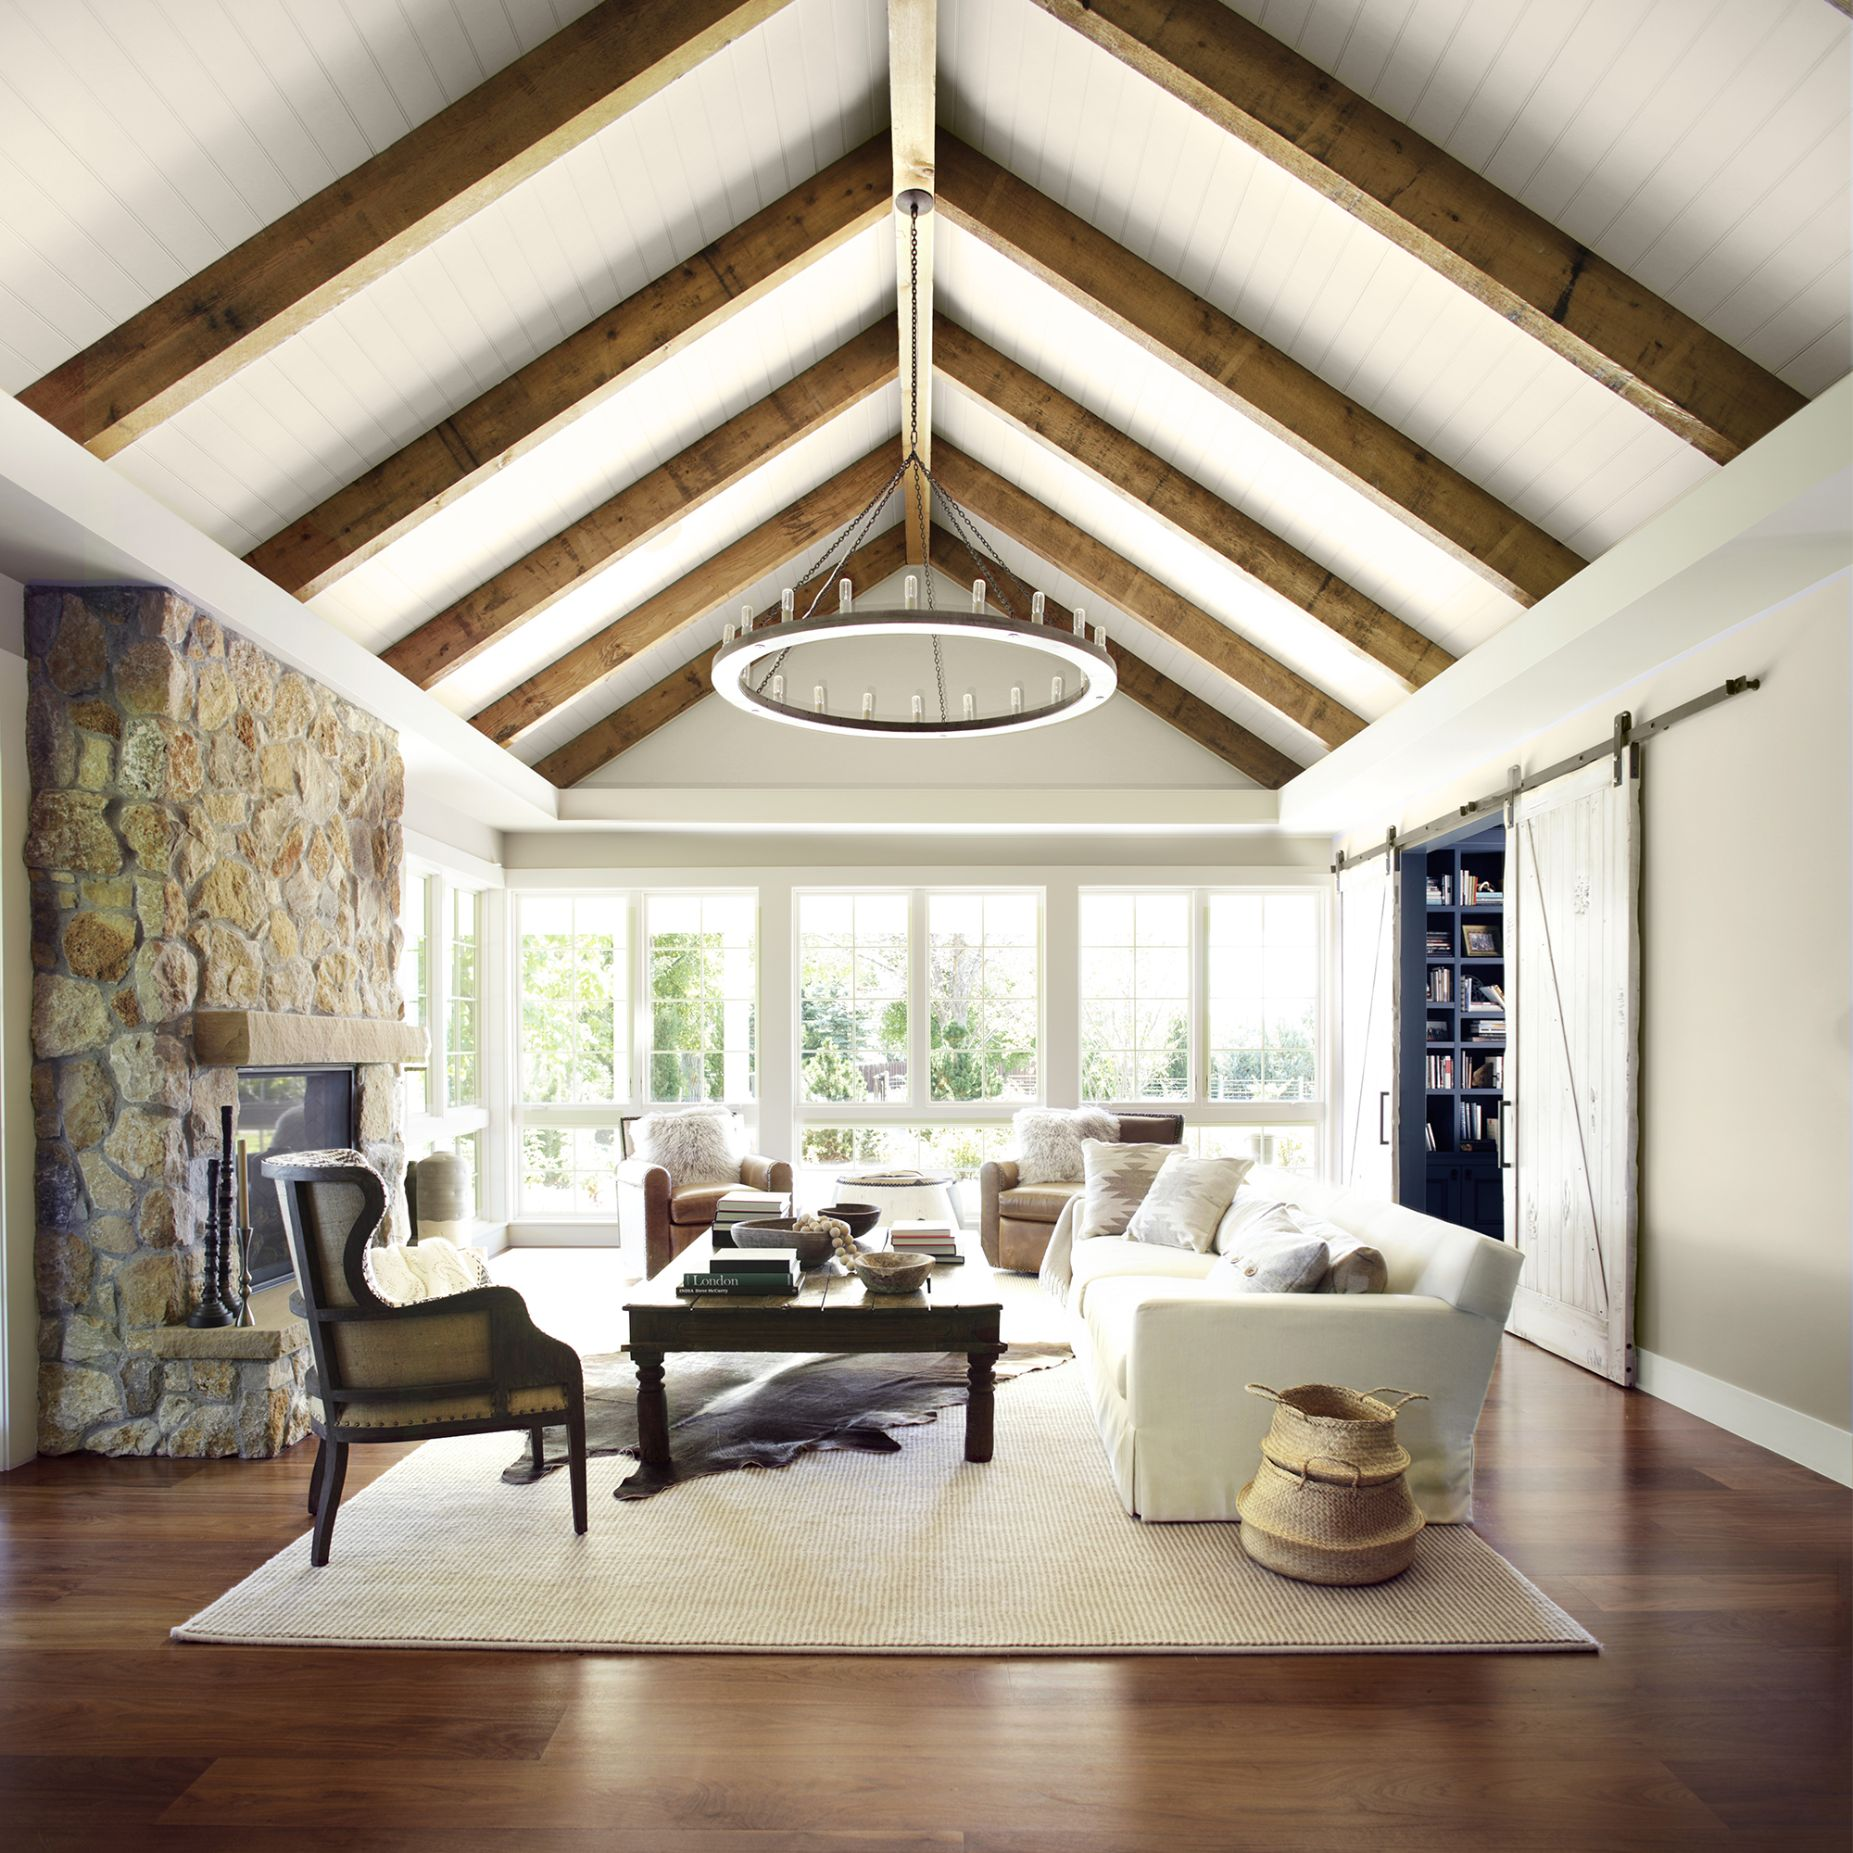 Living Room with Vaulted Ceiling and Wood Beams